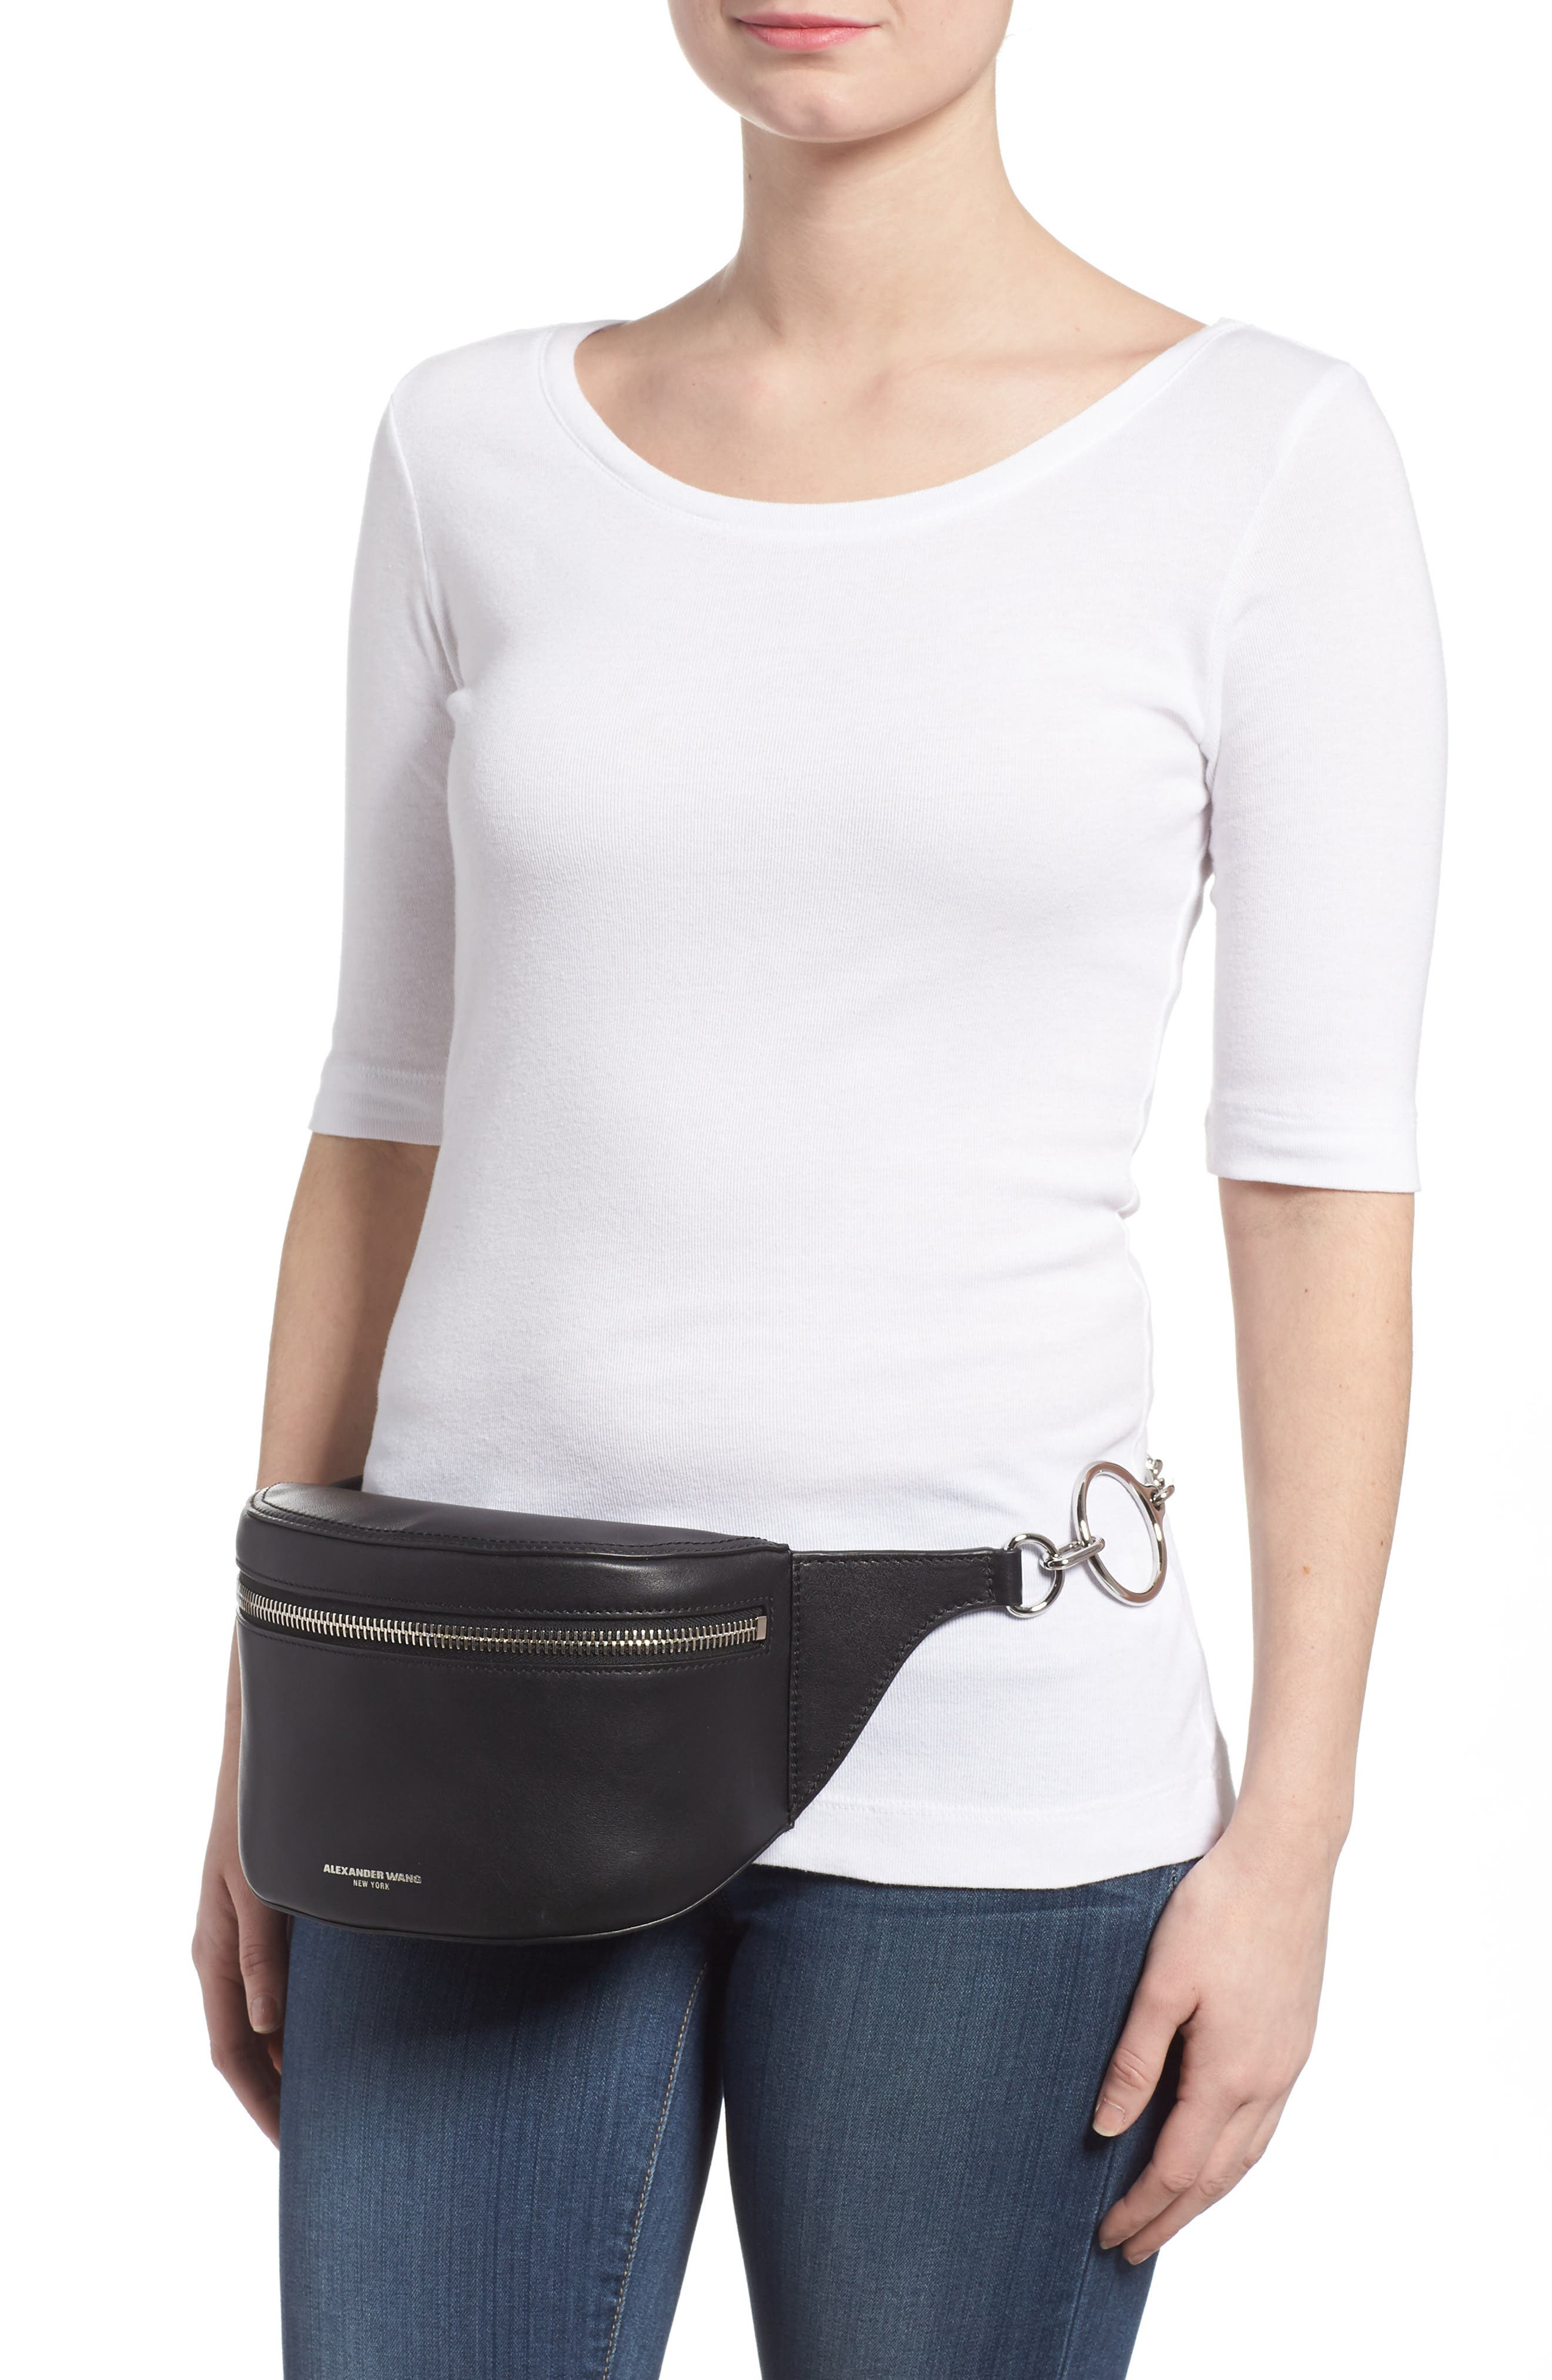 Leather Fanny Pack,                             Alternate thumbnail 2, color,                             001